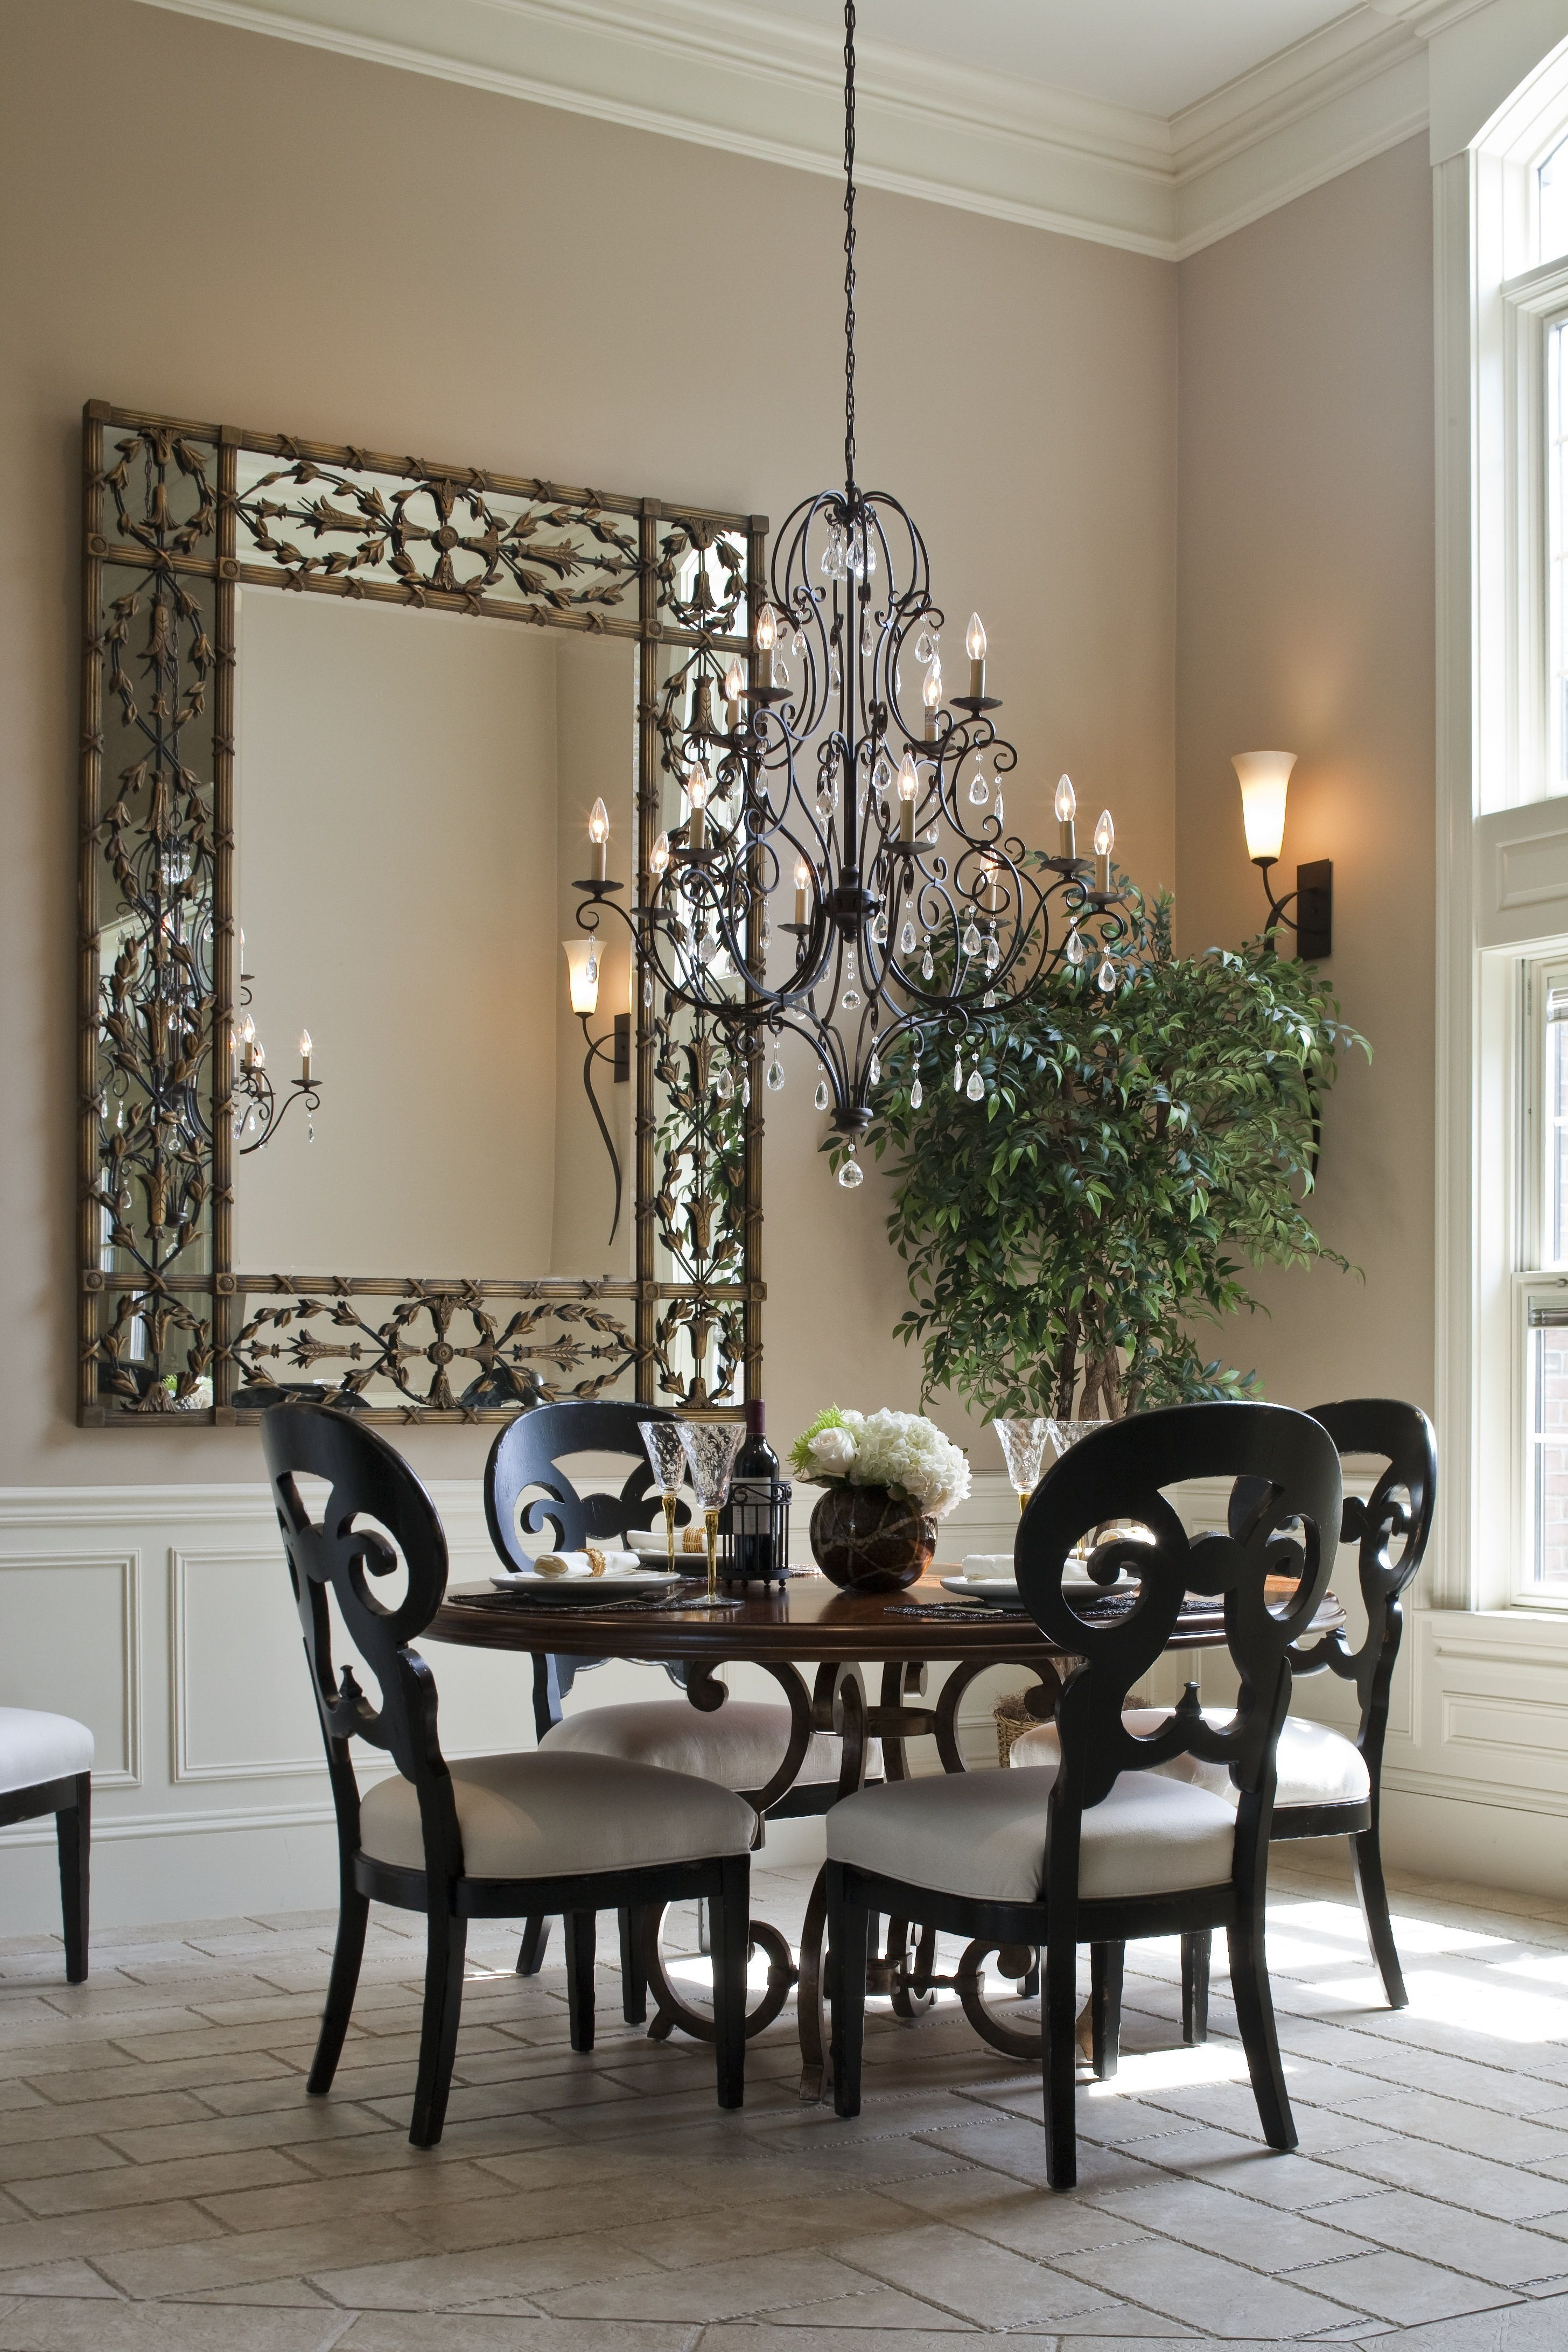 Your living room might not be the biggest, but with a little bit of effort, it could double up as a guest bedroom, dining room or exercise area if you're. 48 Luxurious Small Dining Room Decorating Ideas | Unique ...